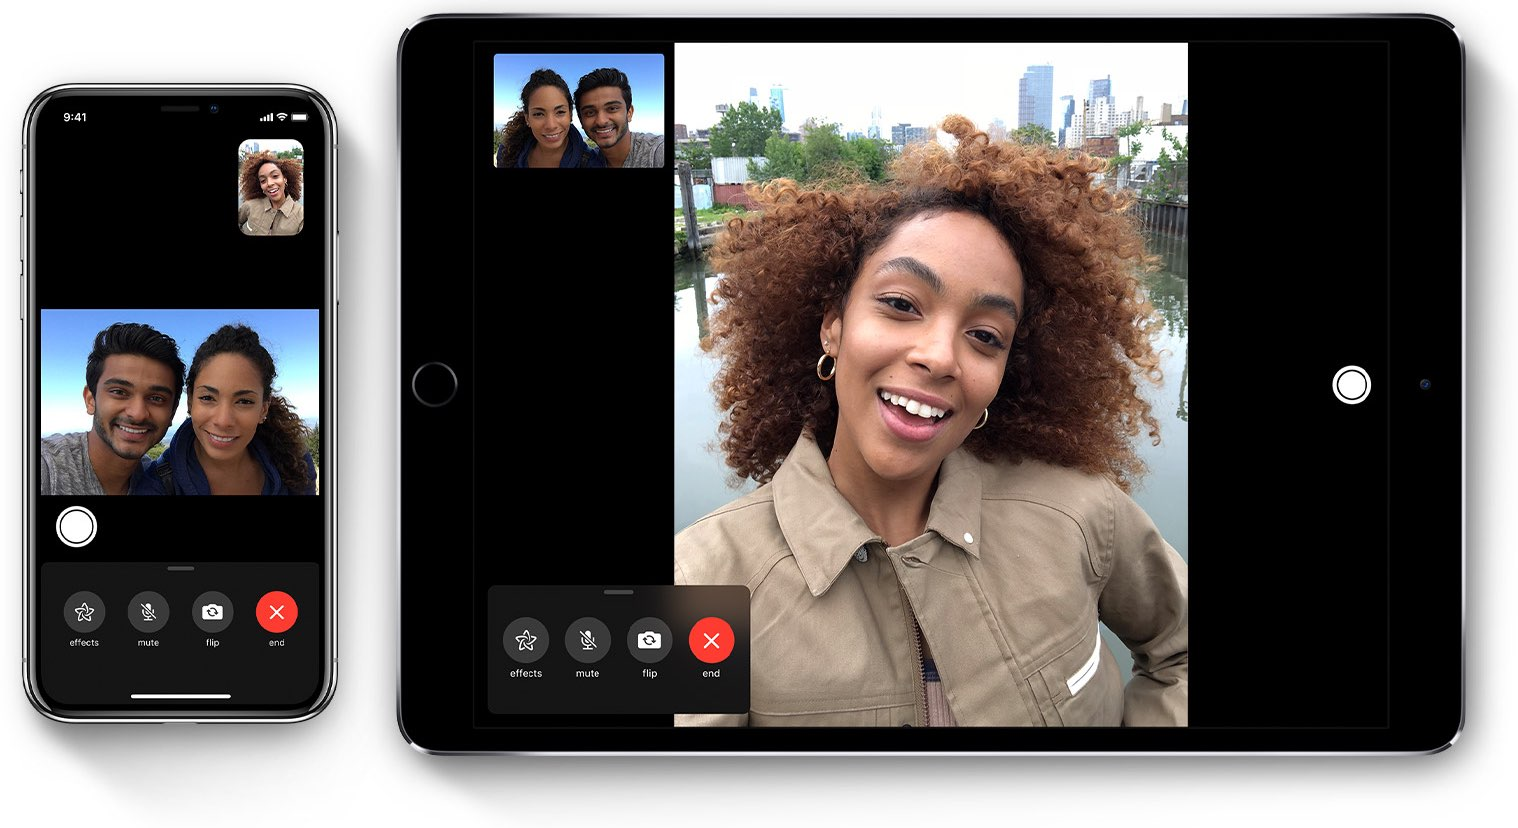 Group FaceTime on iPhone and iPad